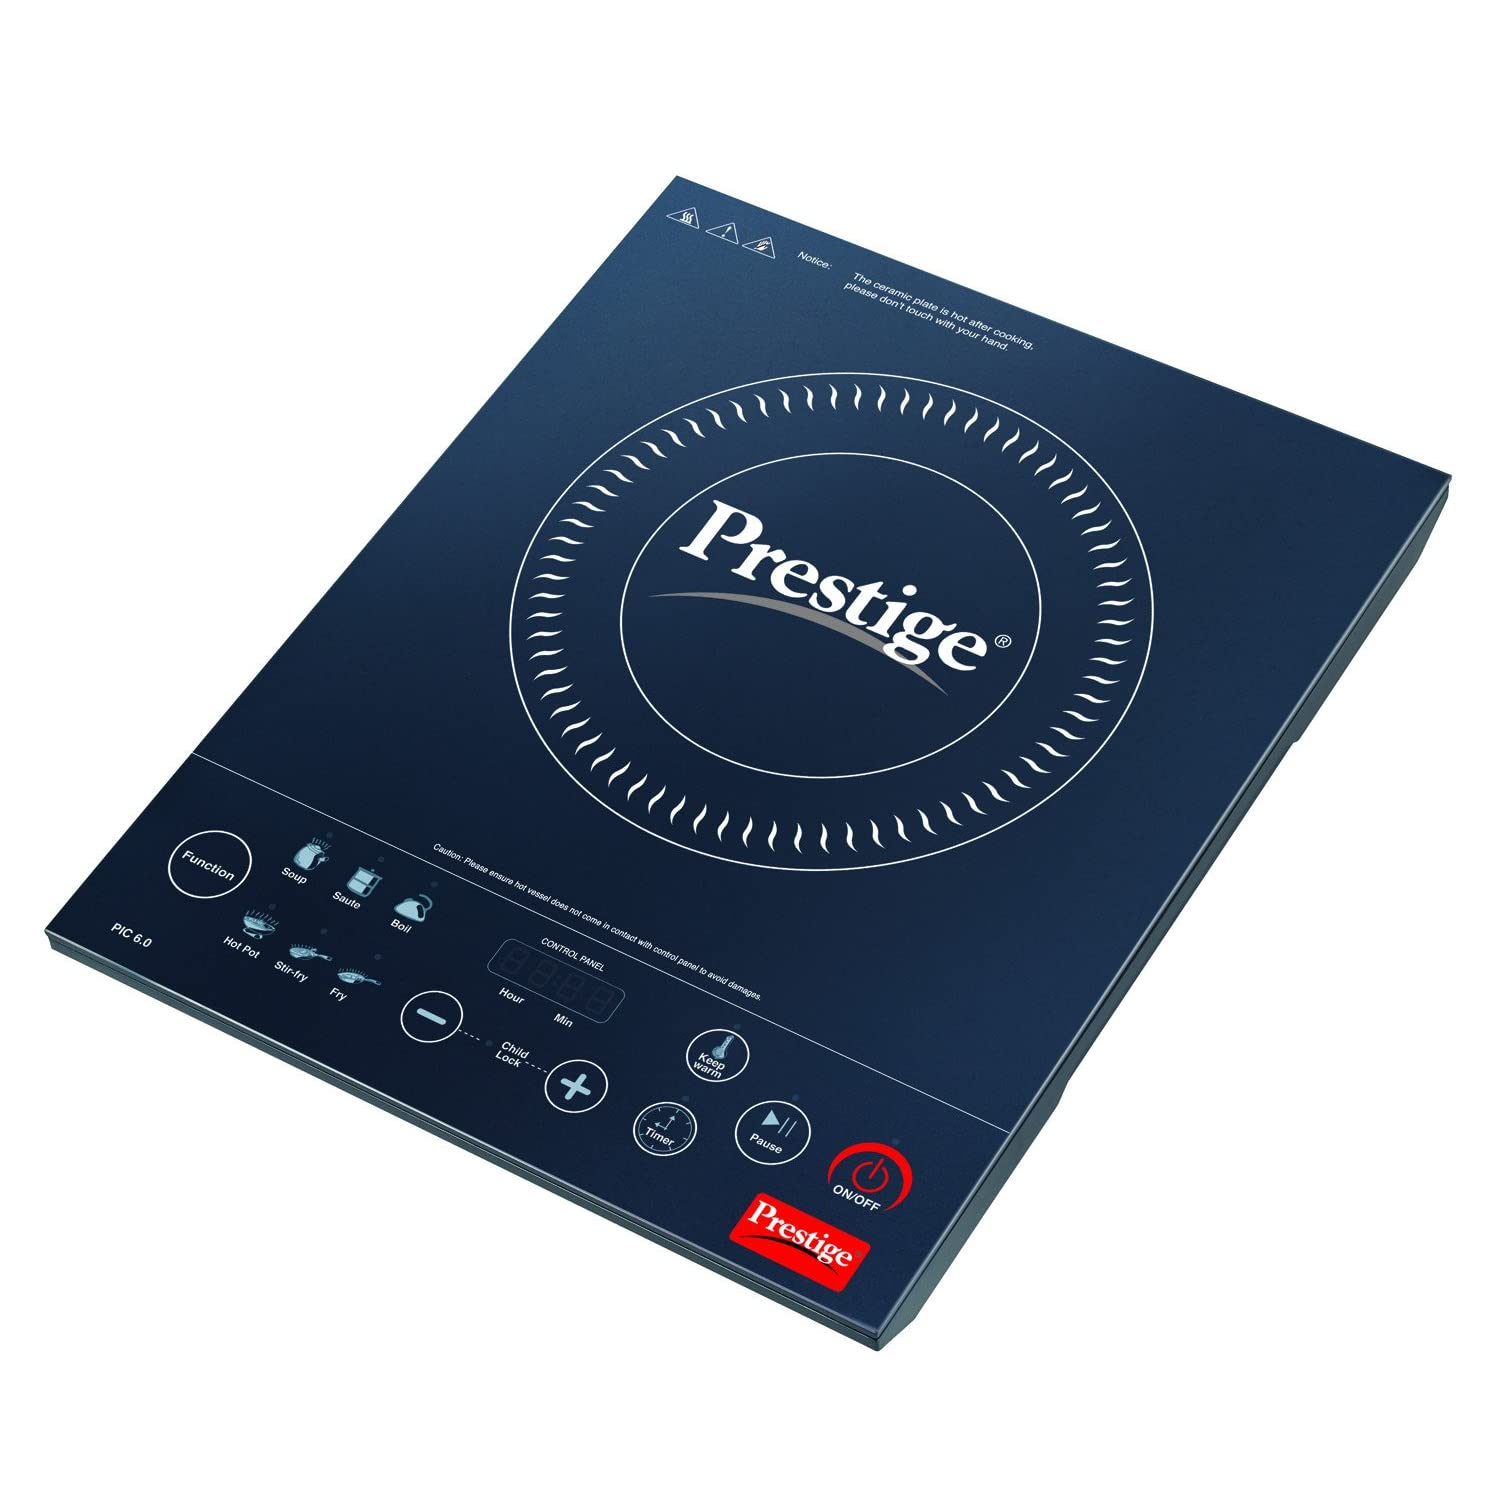 Prestige 2000-Watt Induction Cooktop PIC 6.0